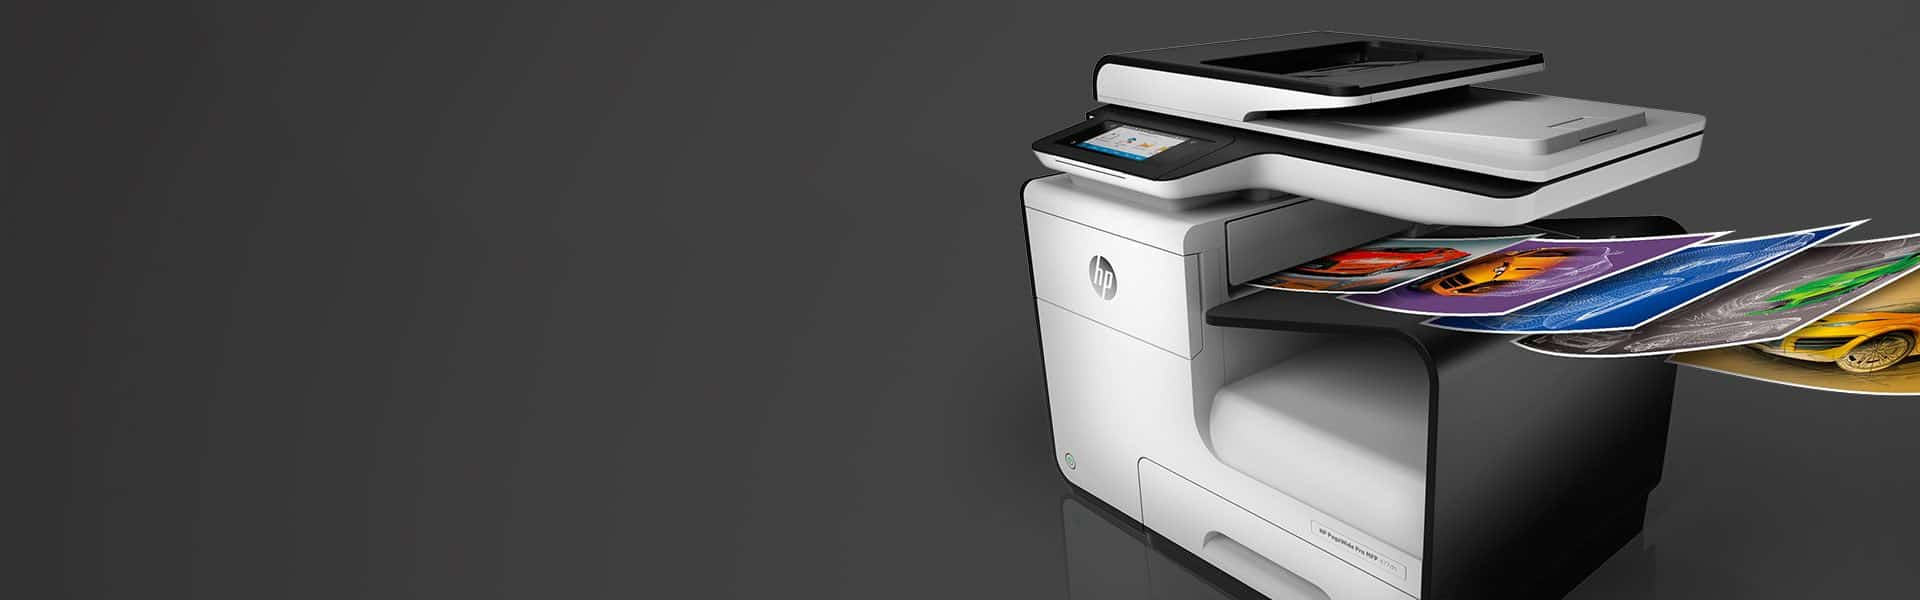 Best Wireless Printer 2019 – Top Rated Wireless Printers and Reviews